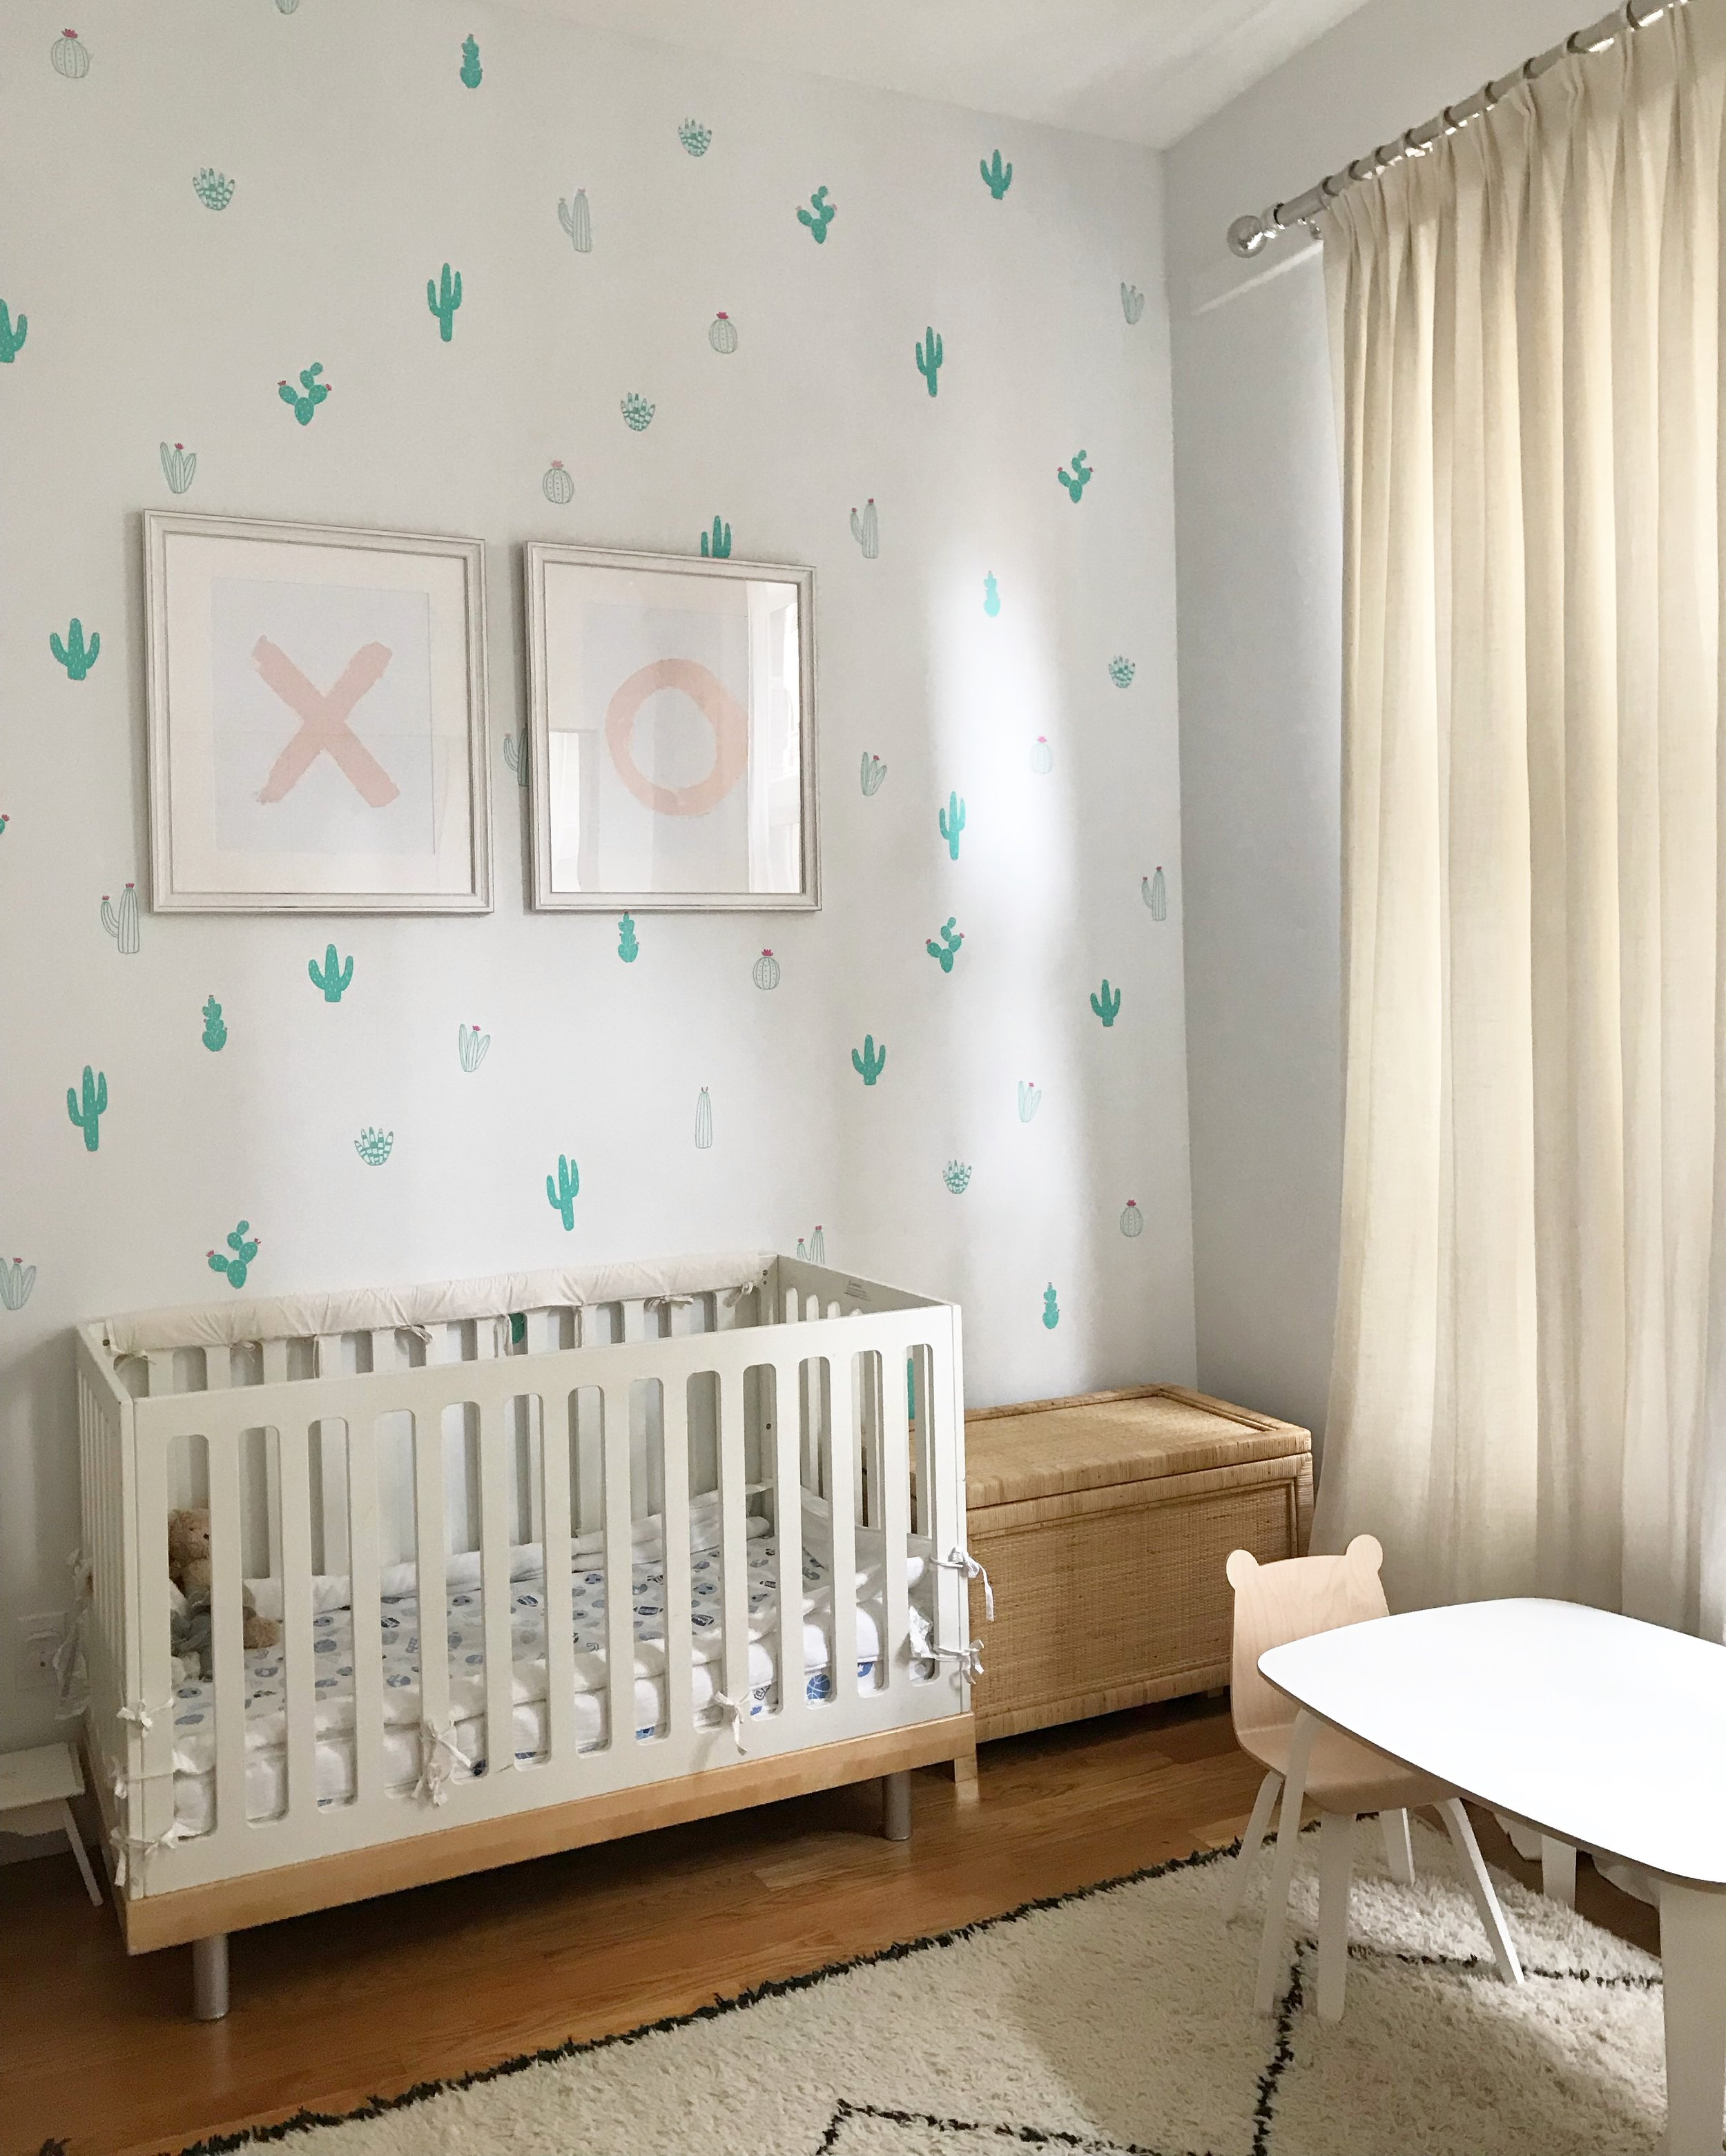 p squared away nurseries and children's bedrooms project photo